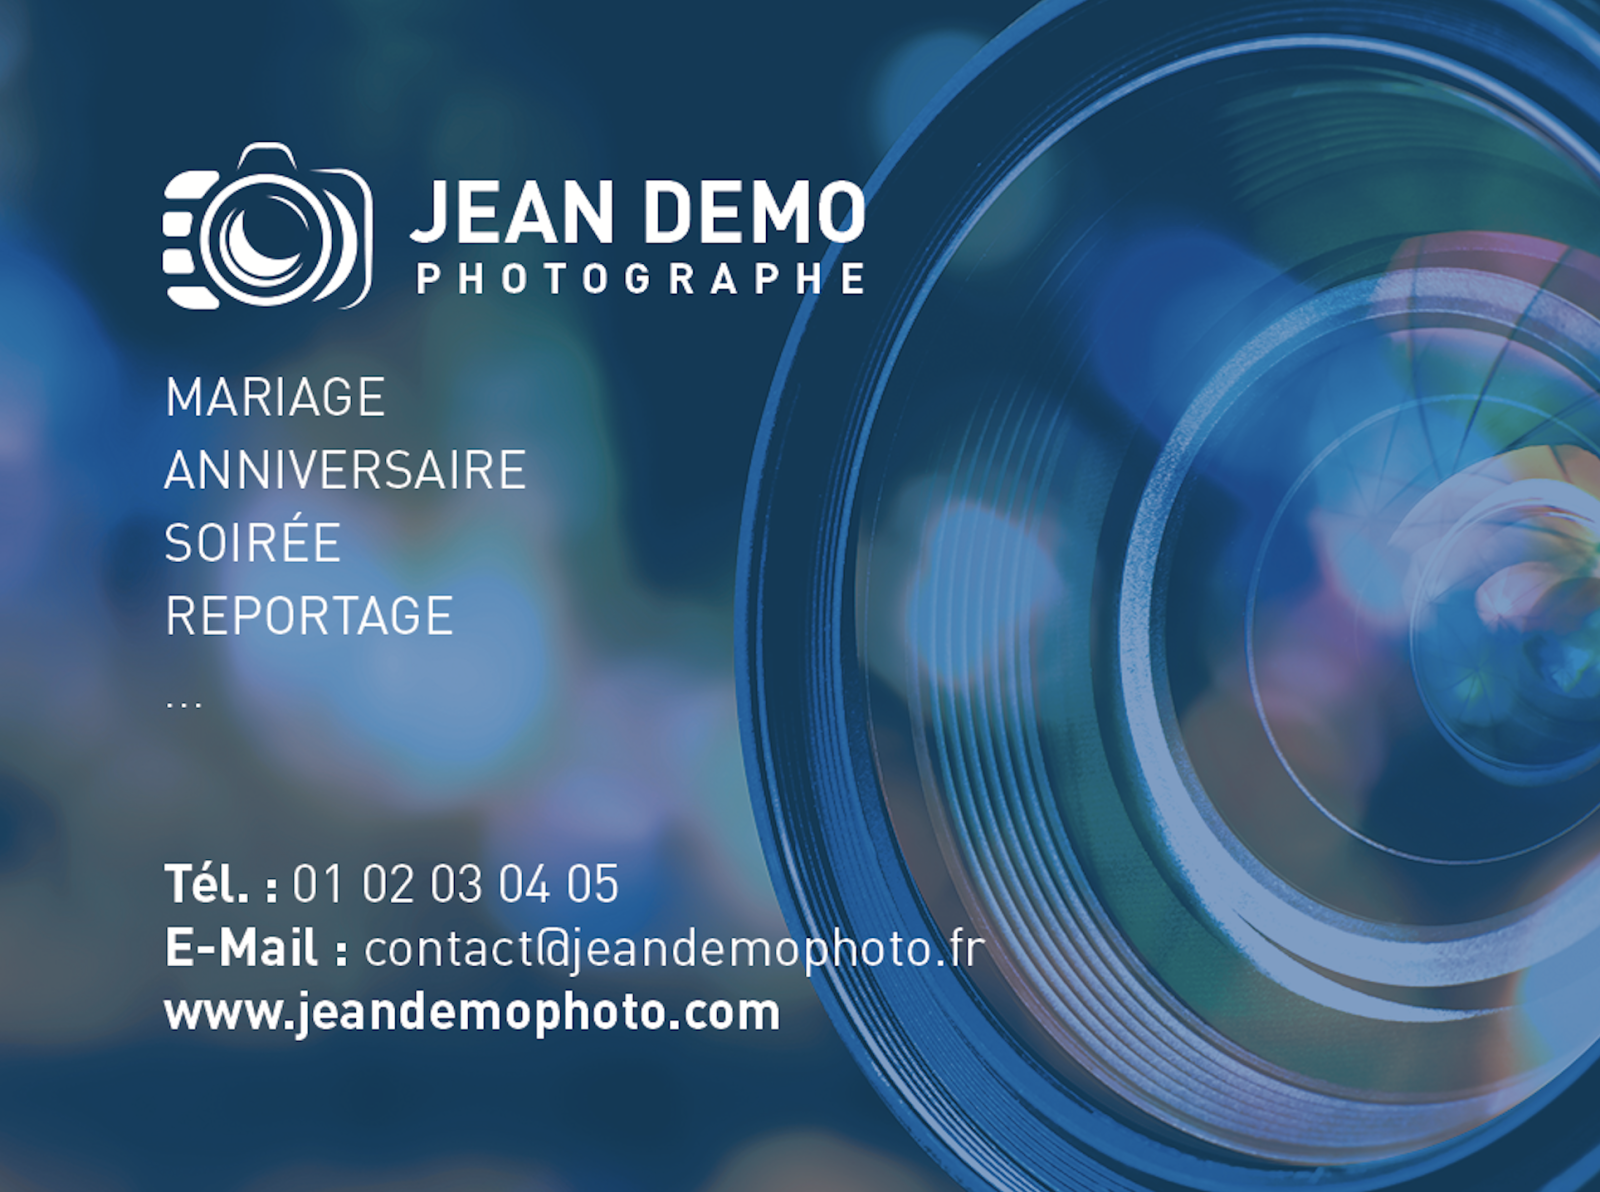 Jeune Free business card PSD by Fabien (Thoux) Berthoux on Dribbble CQ-51